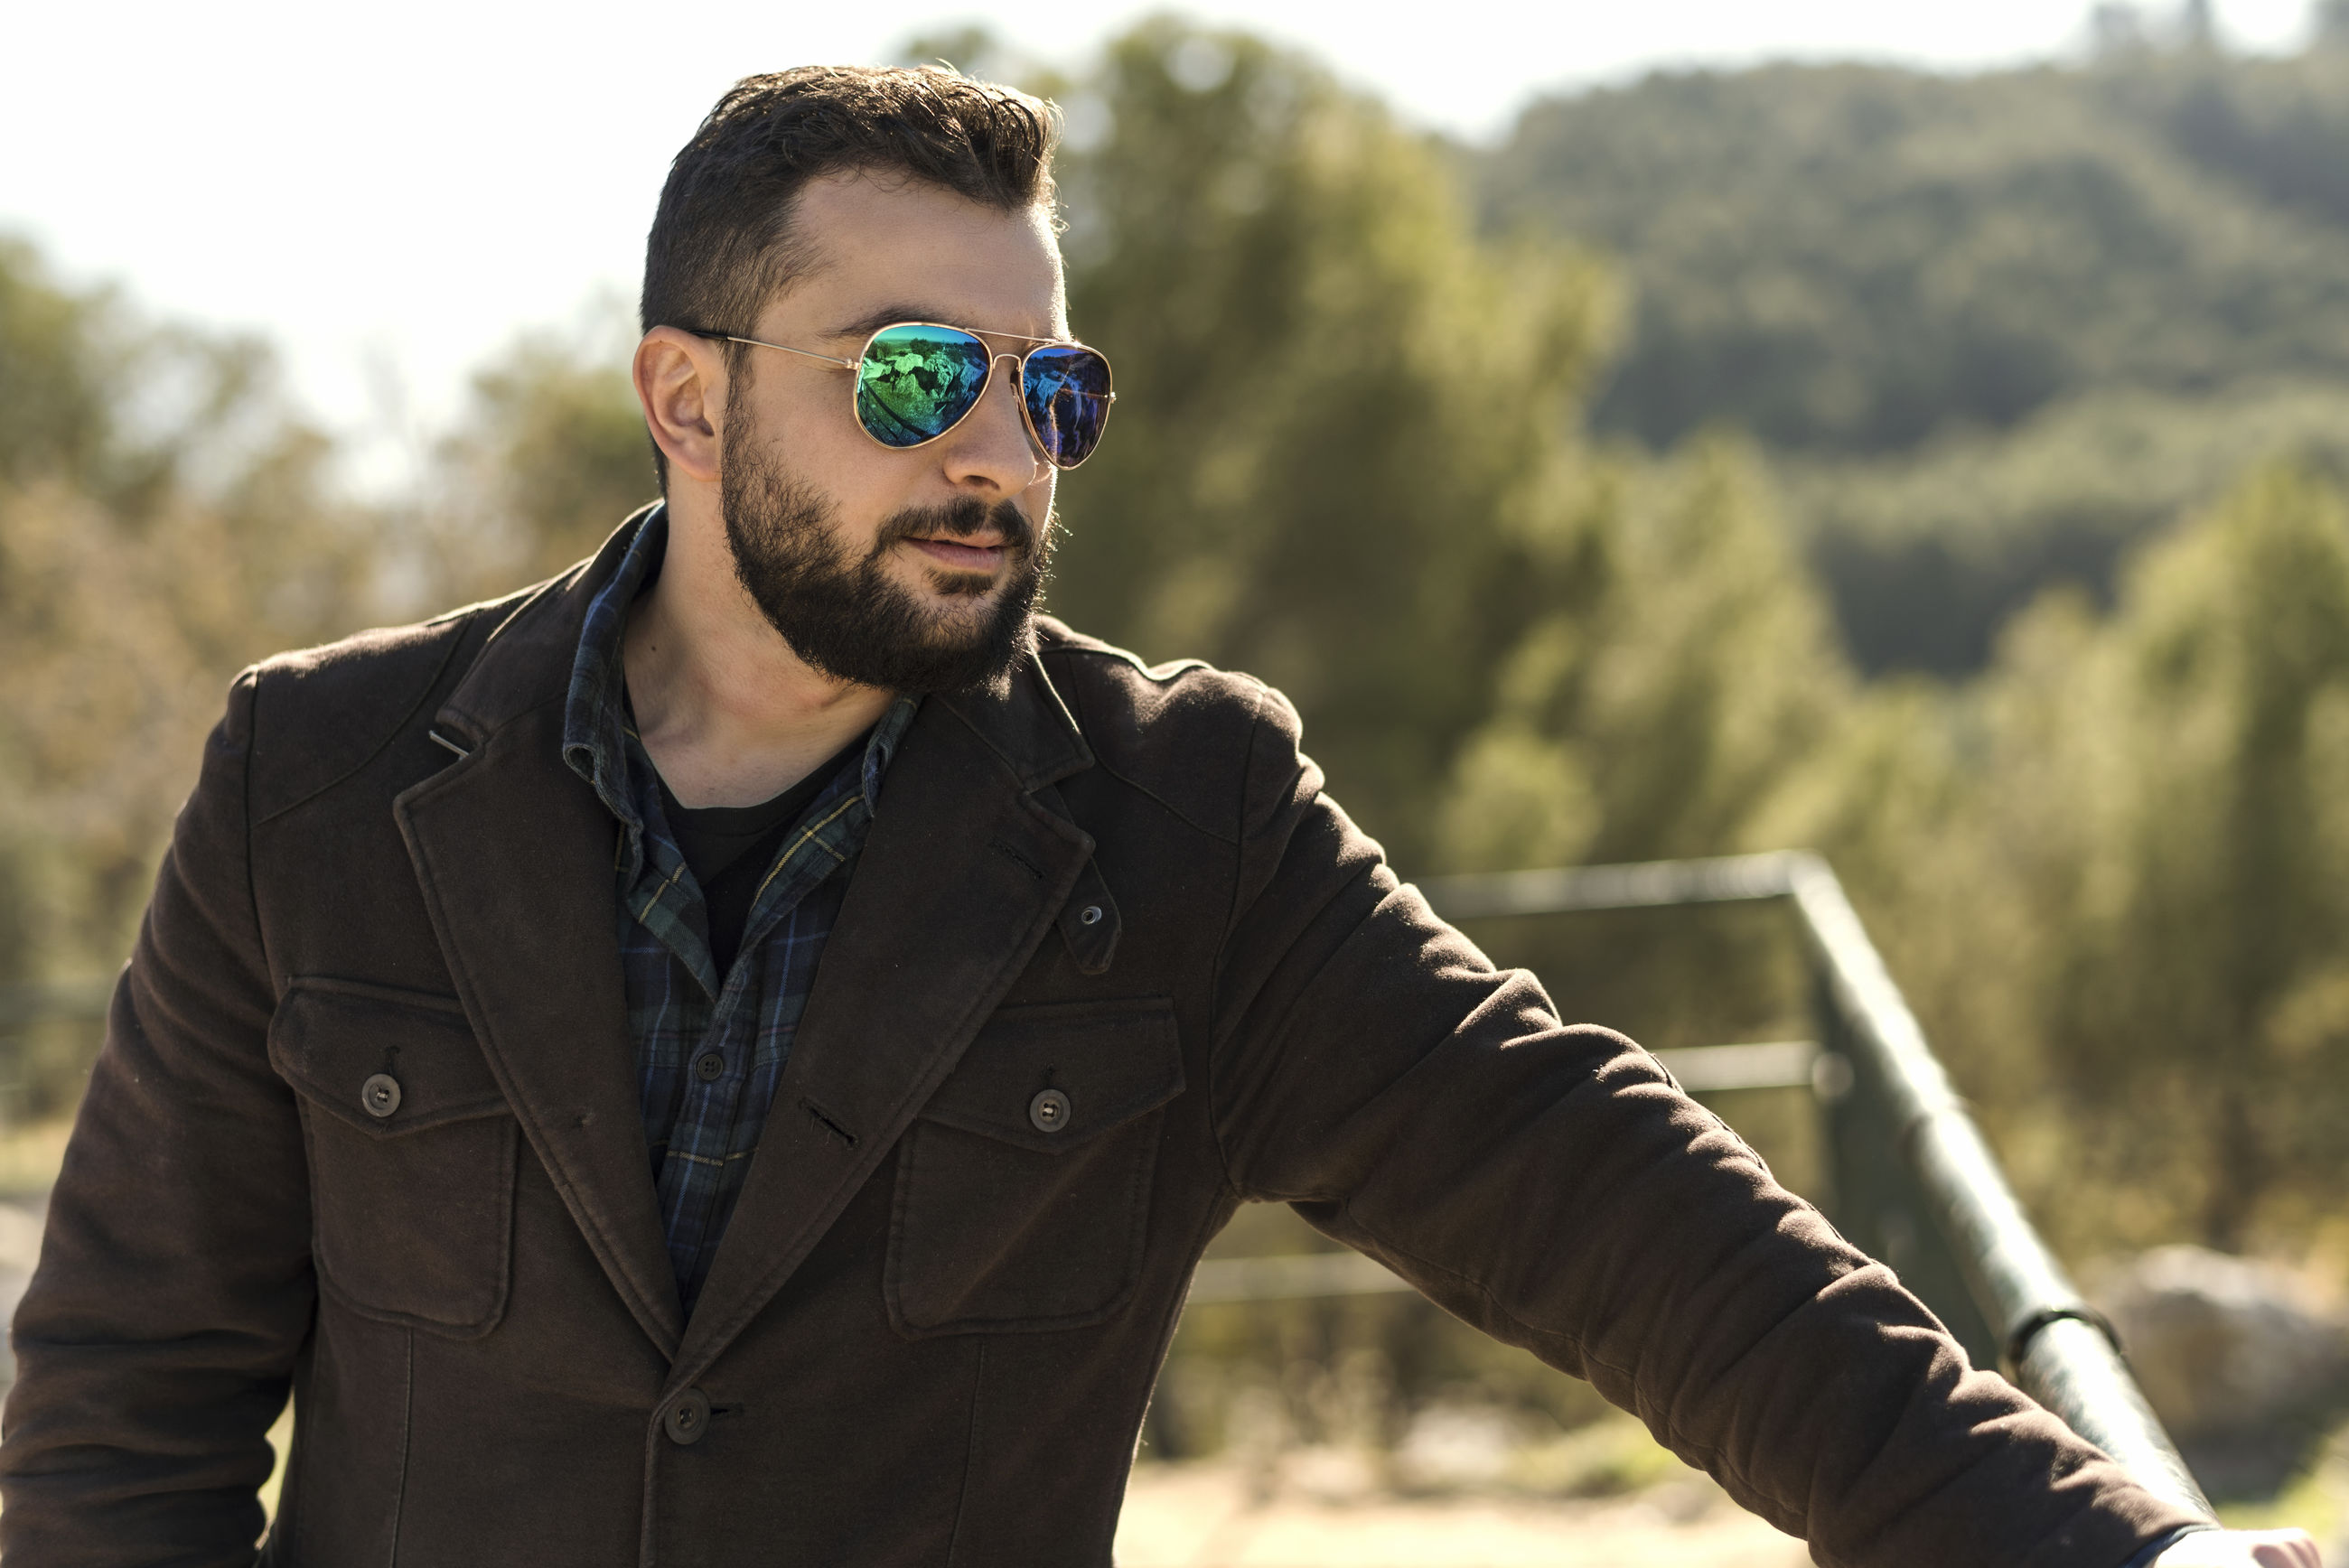 Bearded man wearing sunglasses while looking away during sunny day